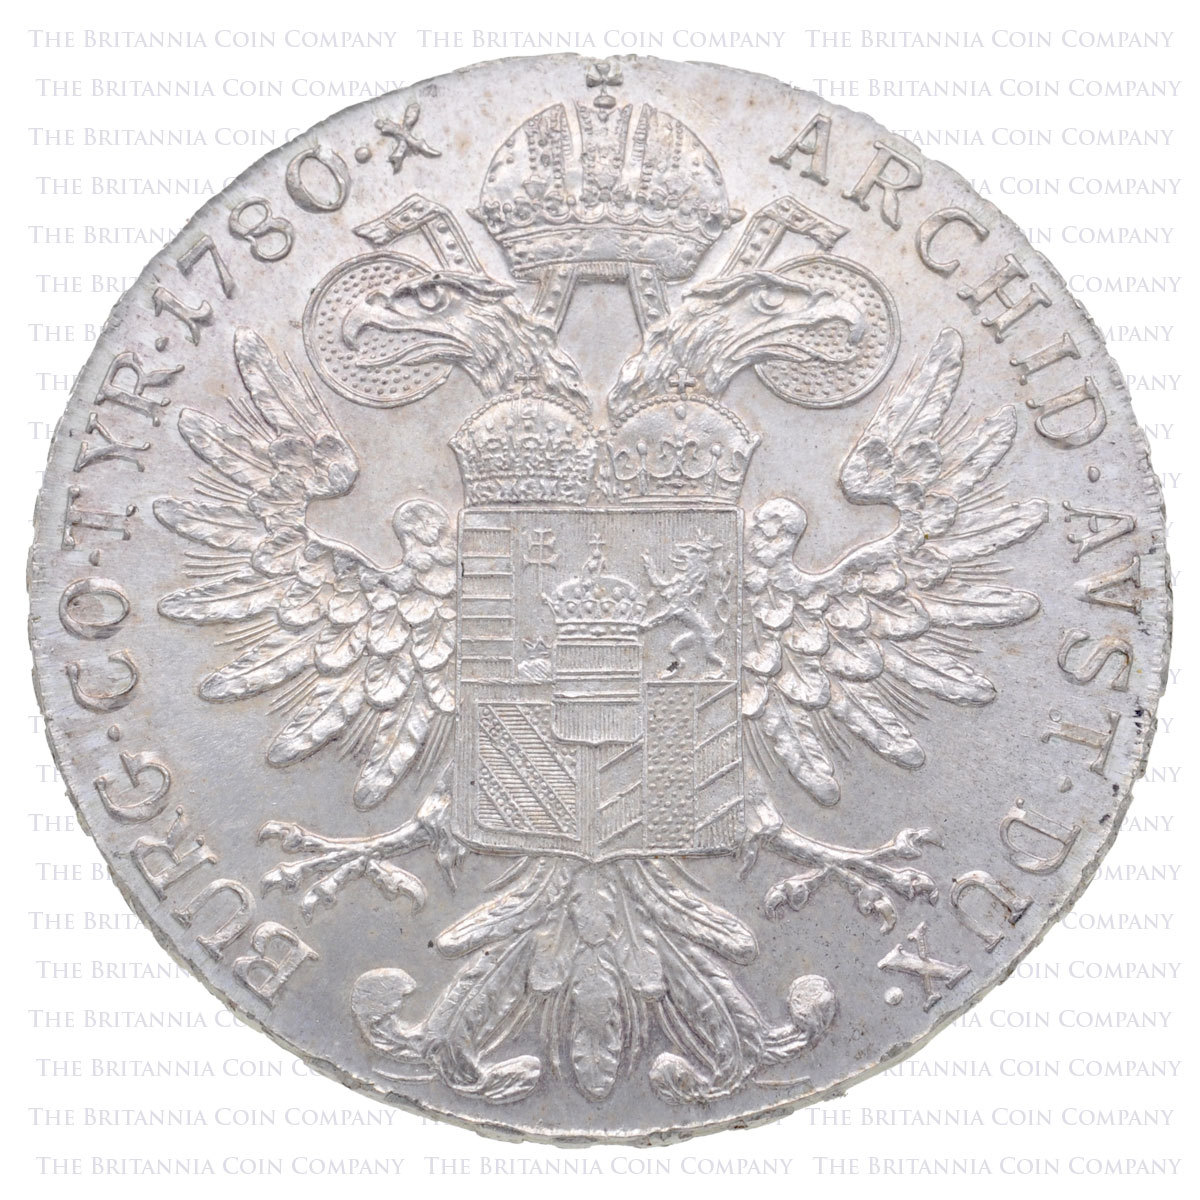 The Maria Theresa Thaler Silver Coin